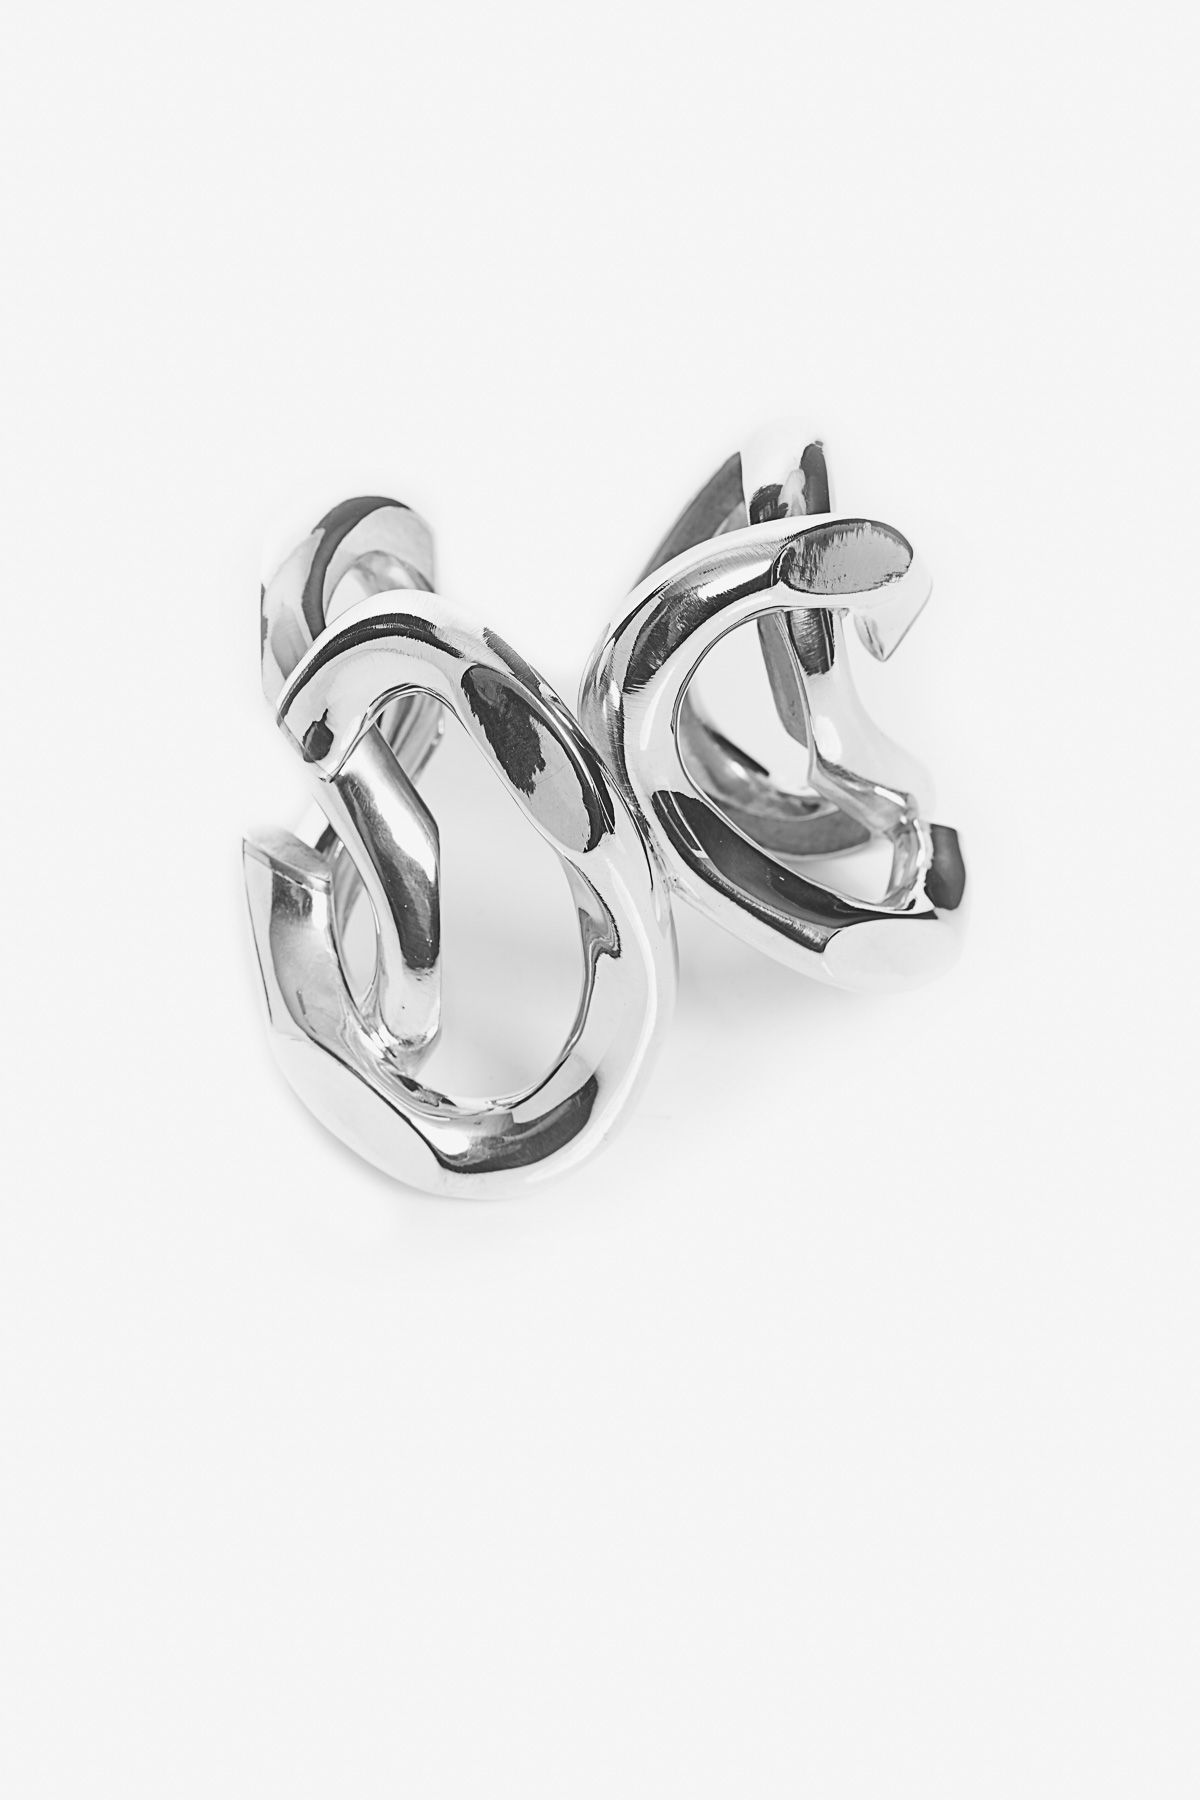 Annelise Michelson Unchained Earring - WOMEN - Jewelry - Annelise Michelson - OPENING CEREMONY